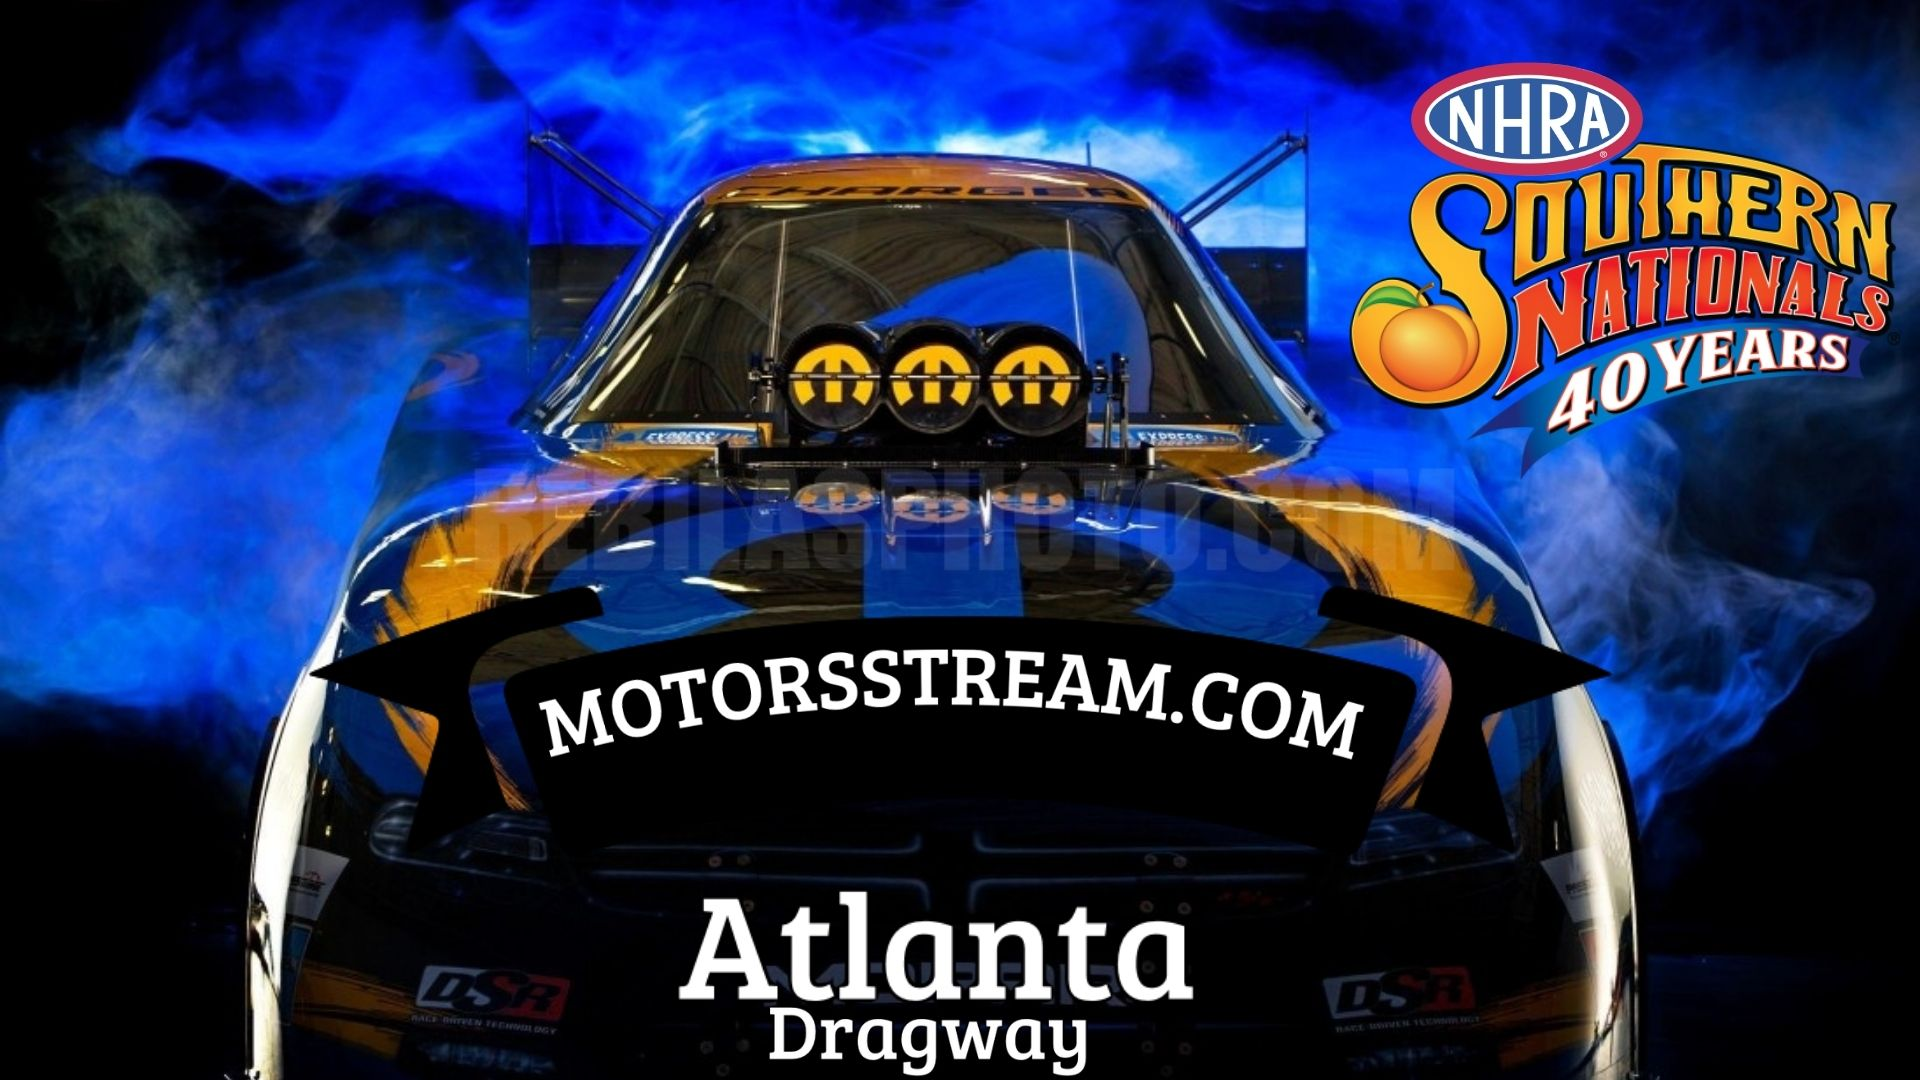 NHRA Southern Nationals 2021 Live Stream